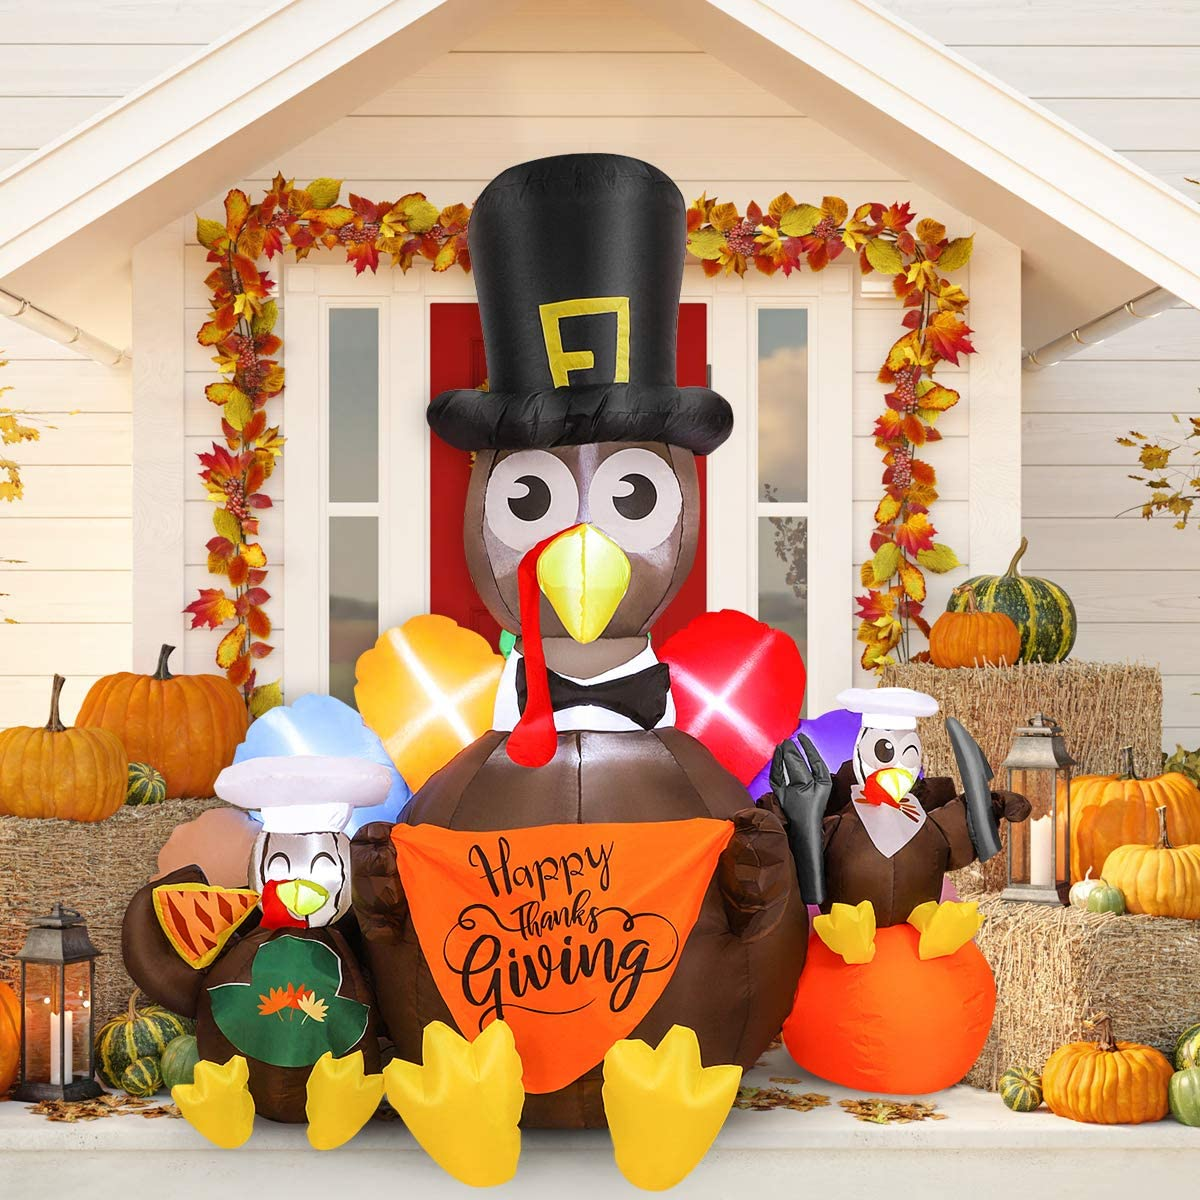 Inflatable Decoration, 6FT High Fall Yard Decoration with Turkeys Blow Up Turkey Decoration with Built-in Lights for Outdoor Yard Garden